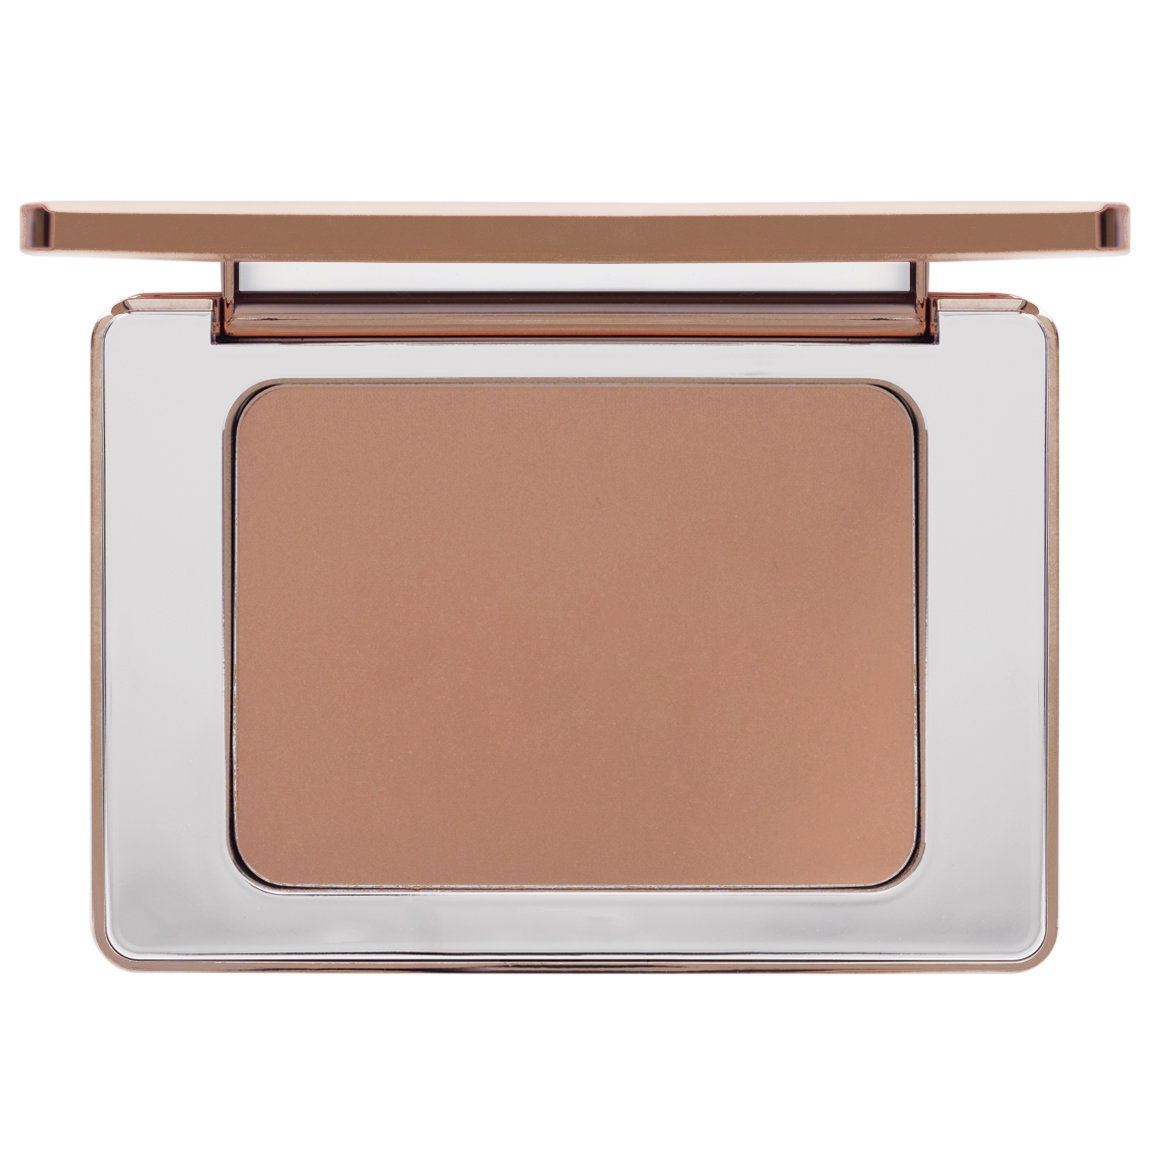 Natasha Denona Contour Sculpting Powder 02 Medium product smear.